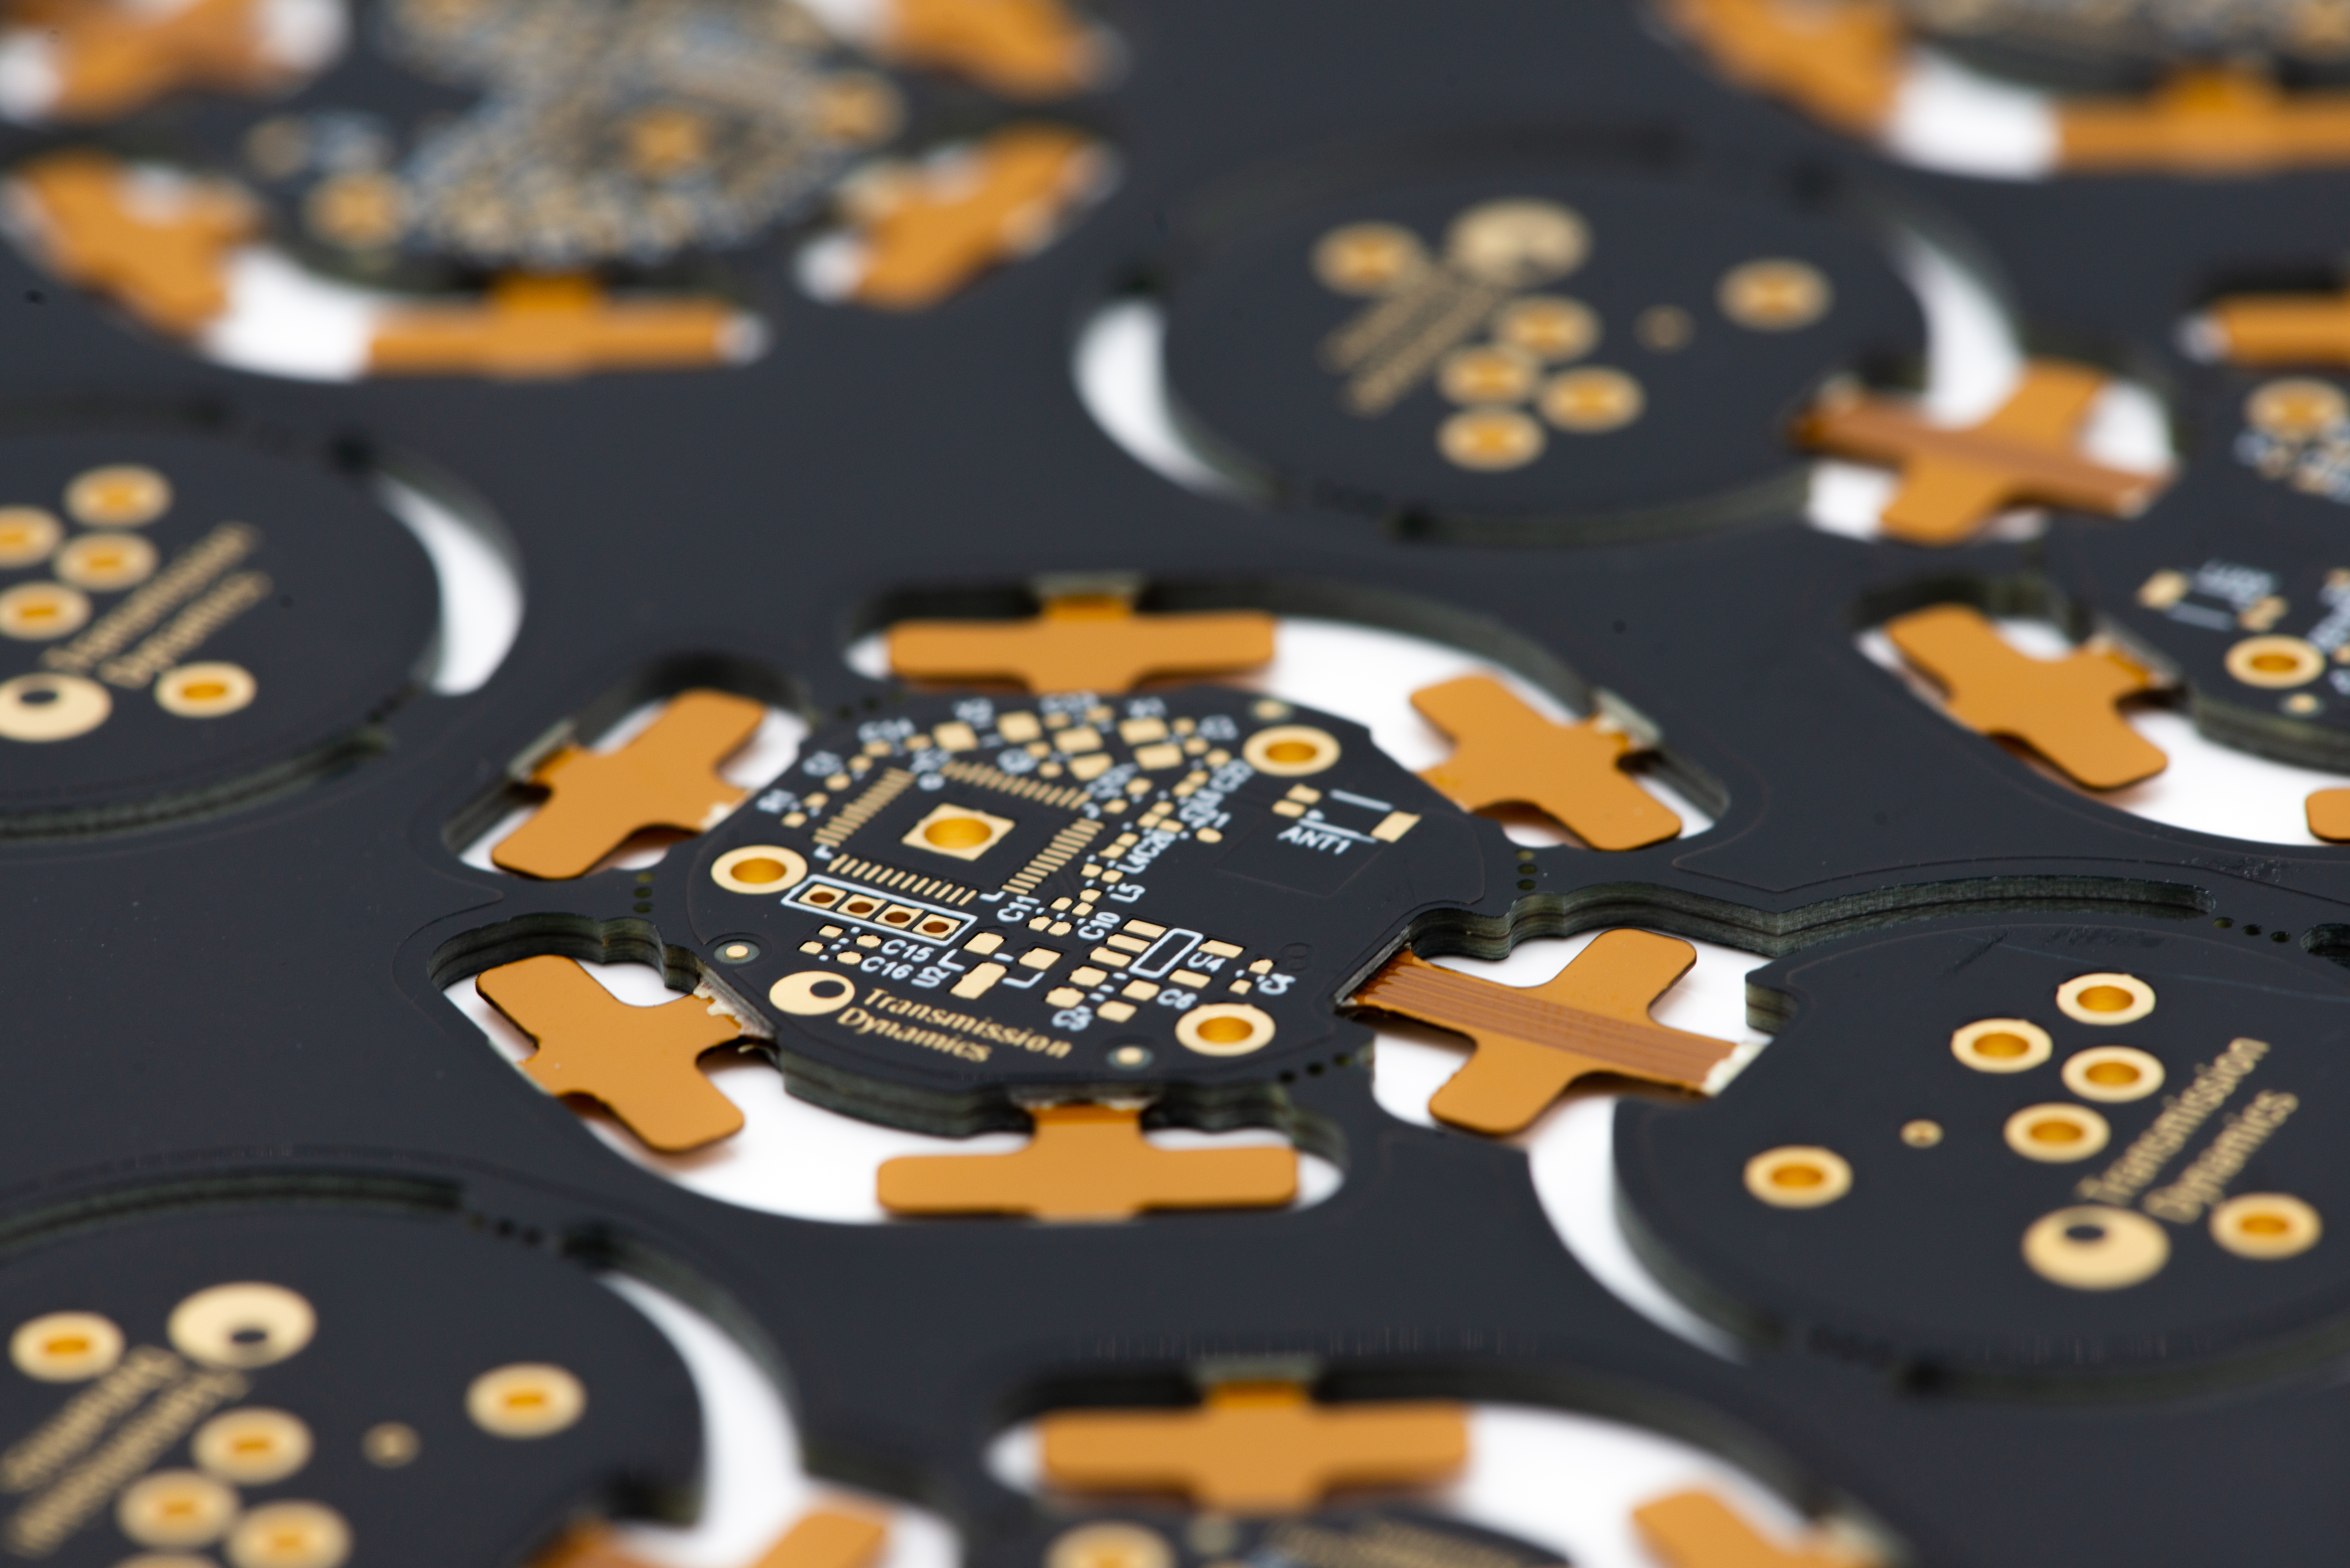 Flexible Circuit Assembly Pica Manufacturing Solutions Electronic Fpc Board Copper Film Flat Tactile Download Our Capabilities 4